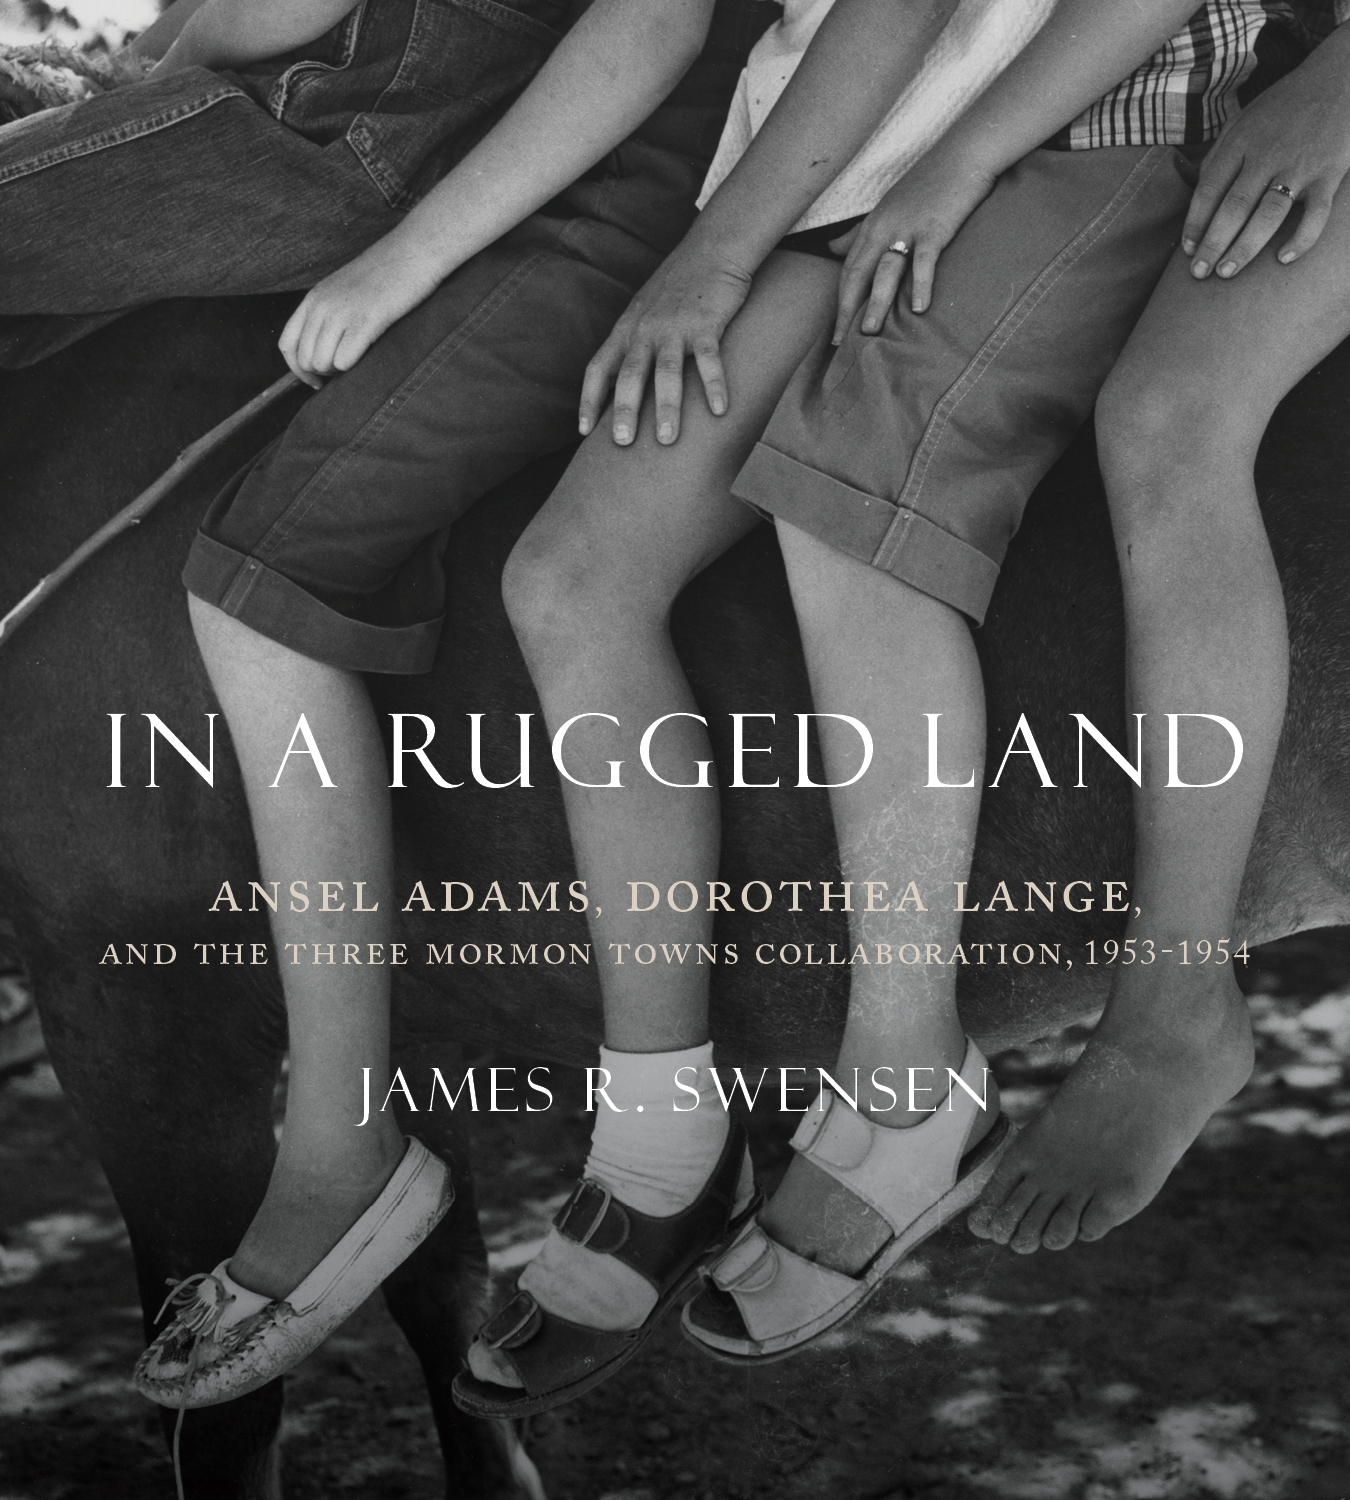 Image result for In a Rugged Land: Ansel Adams, Dorothea Lange, and the Three Mormon Towns Collaboration, 1953-1954